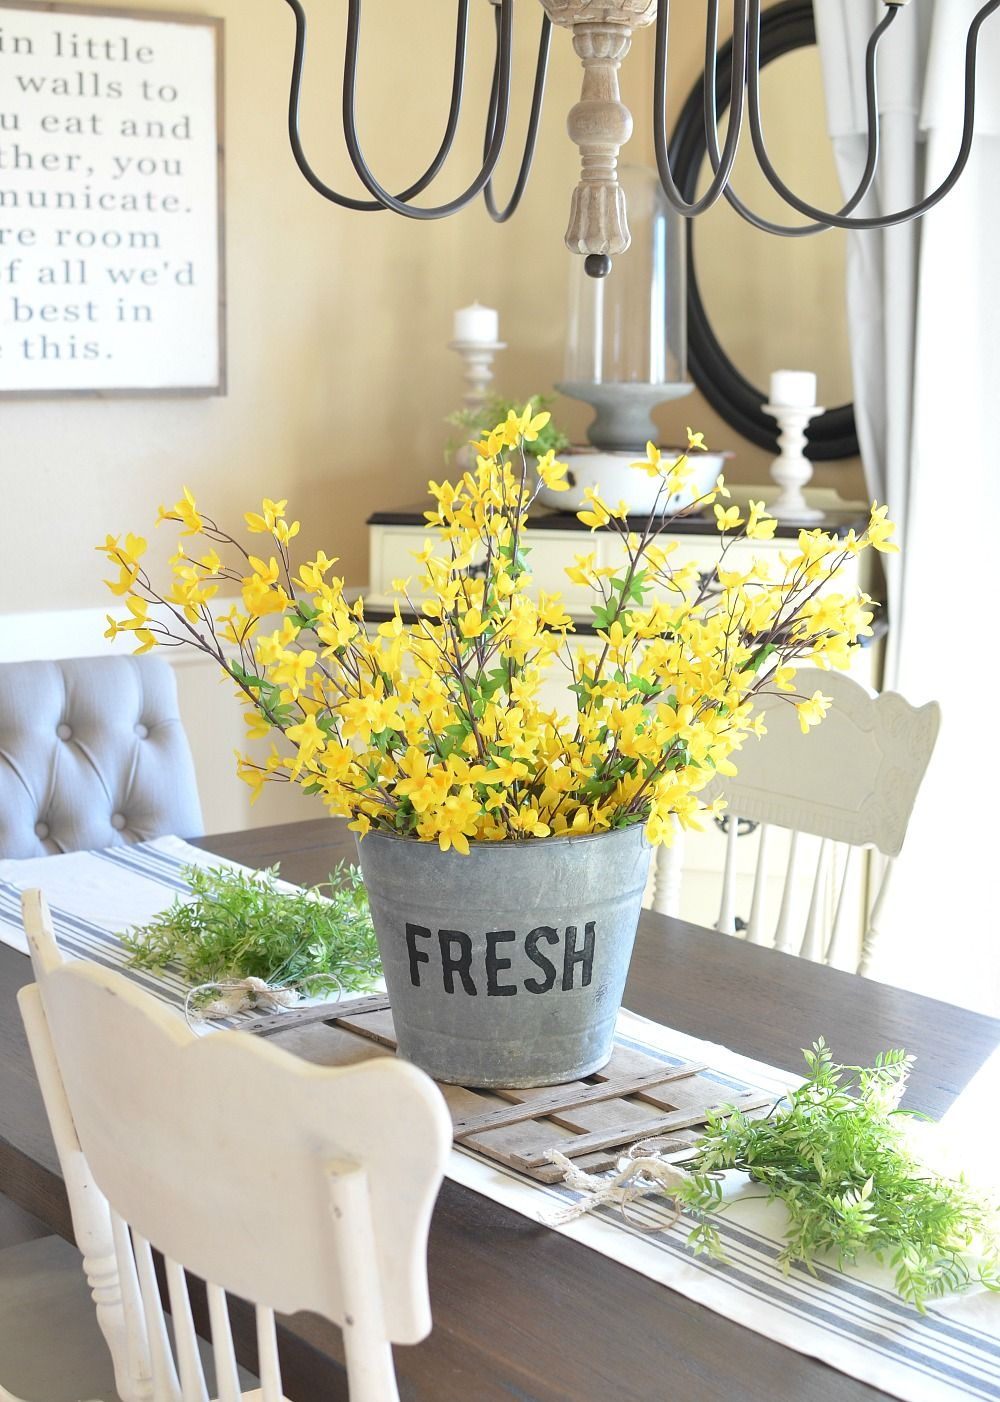 Diy bucket of flowers spring centerpiece farmhouse dining roomsfarmhouse ideasfarmhouse also centerpieces rh pinterest